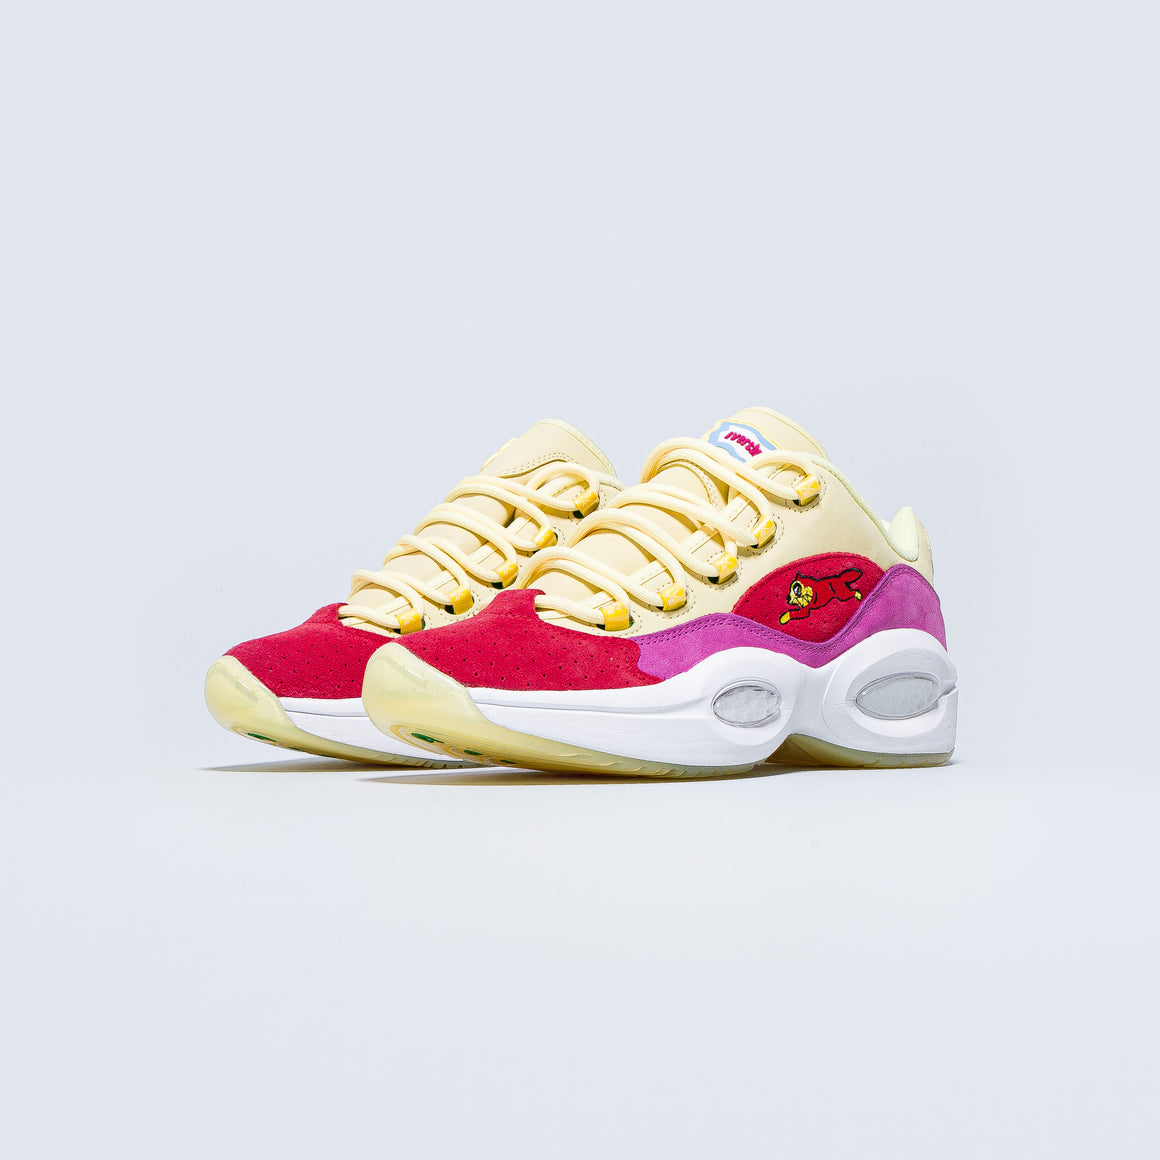 Reebok - Question Low x Icecream - Filtered Yellow/Stadium Red/Ultraberry - Up There